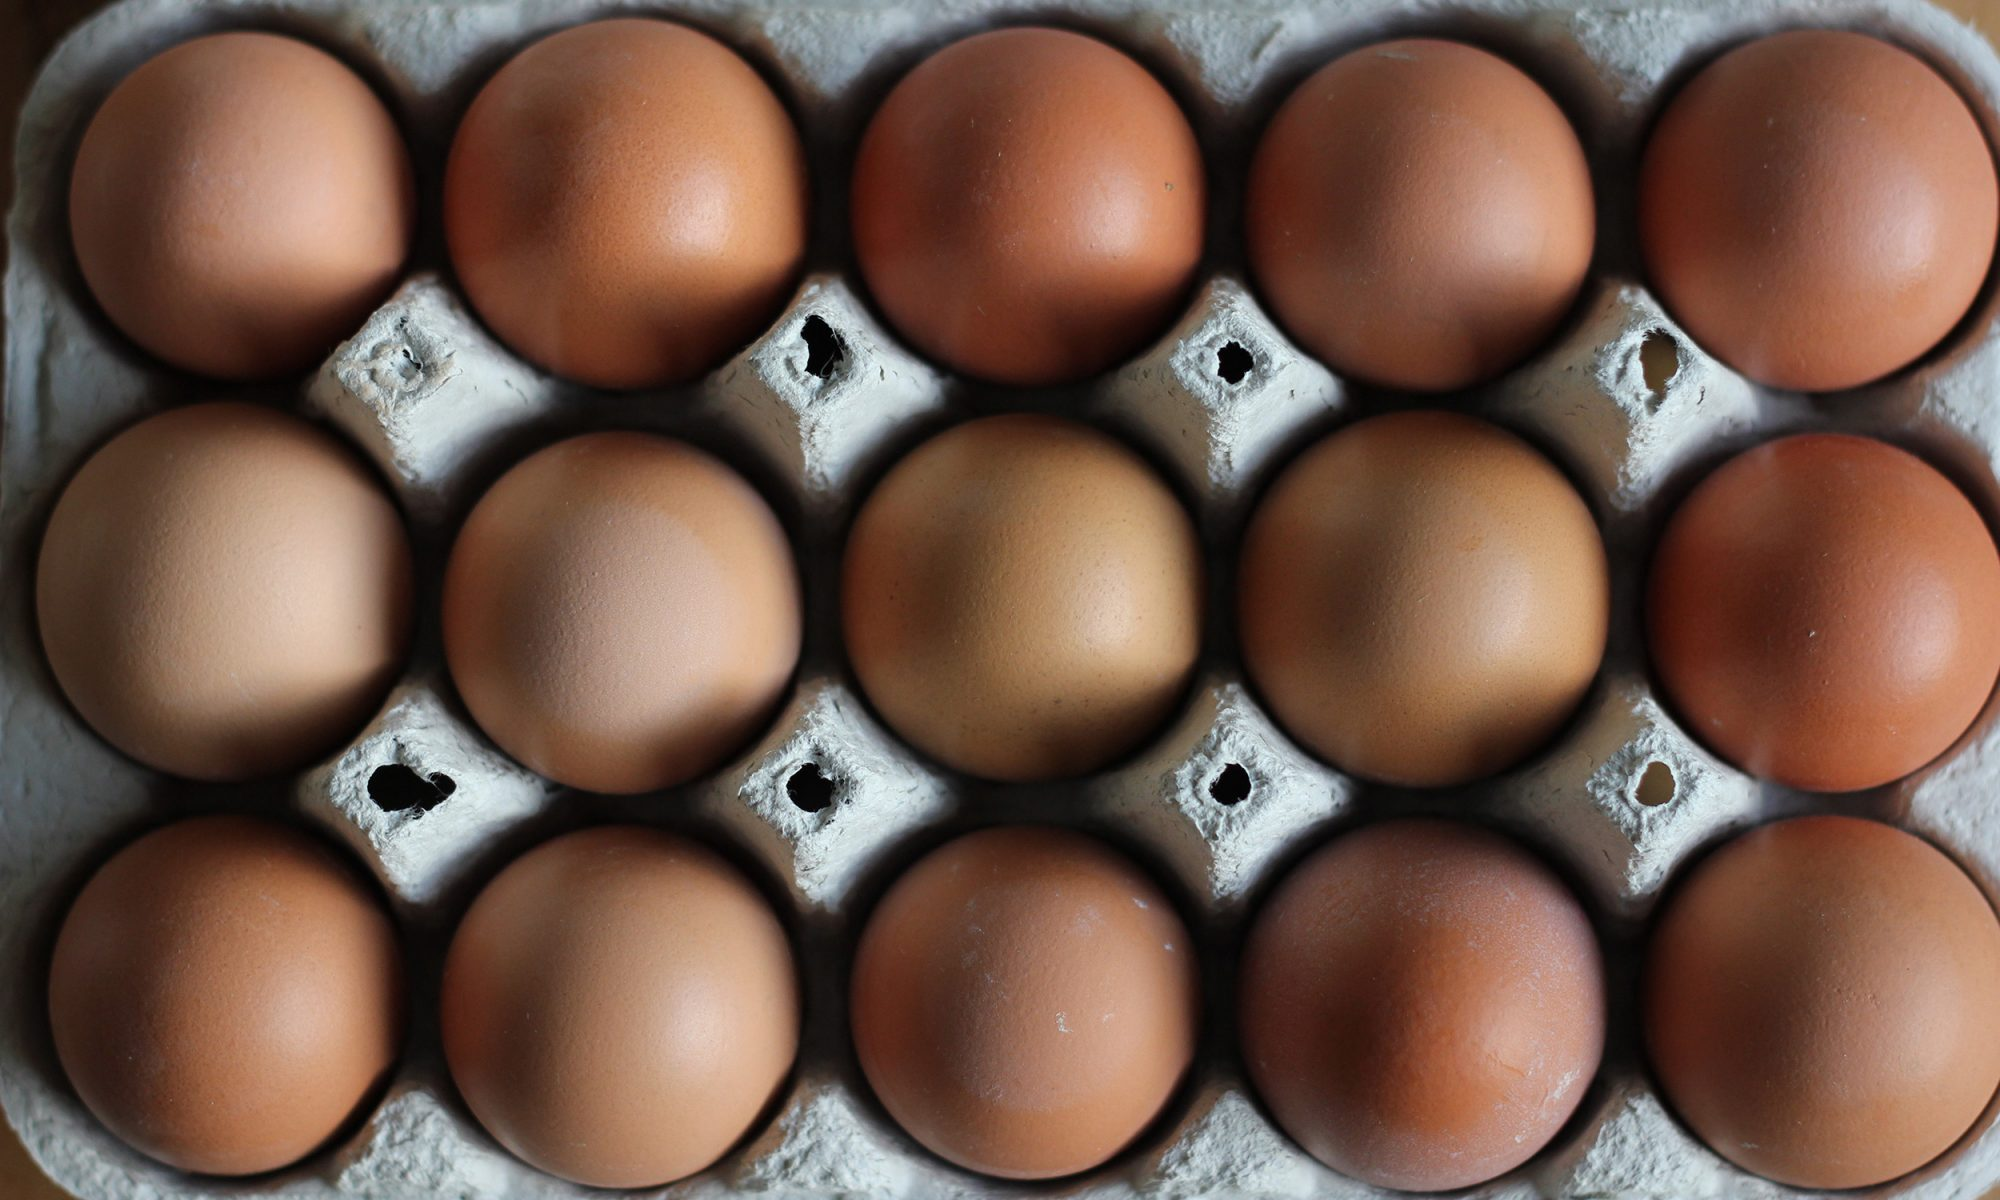 EC: Are Cage-Free Eggs Really Better for the Hens?